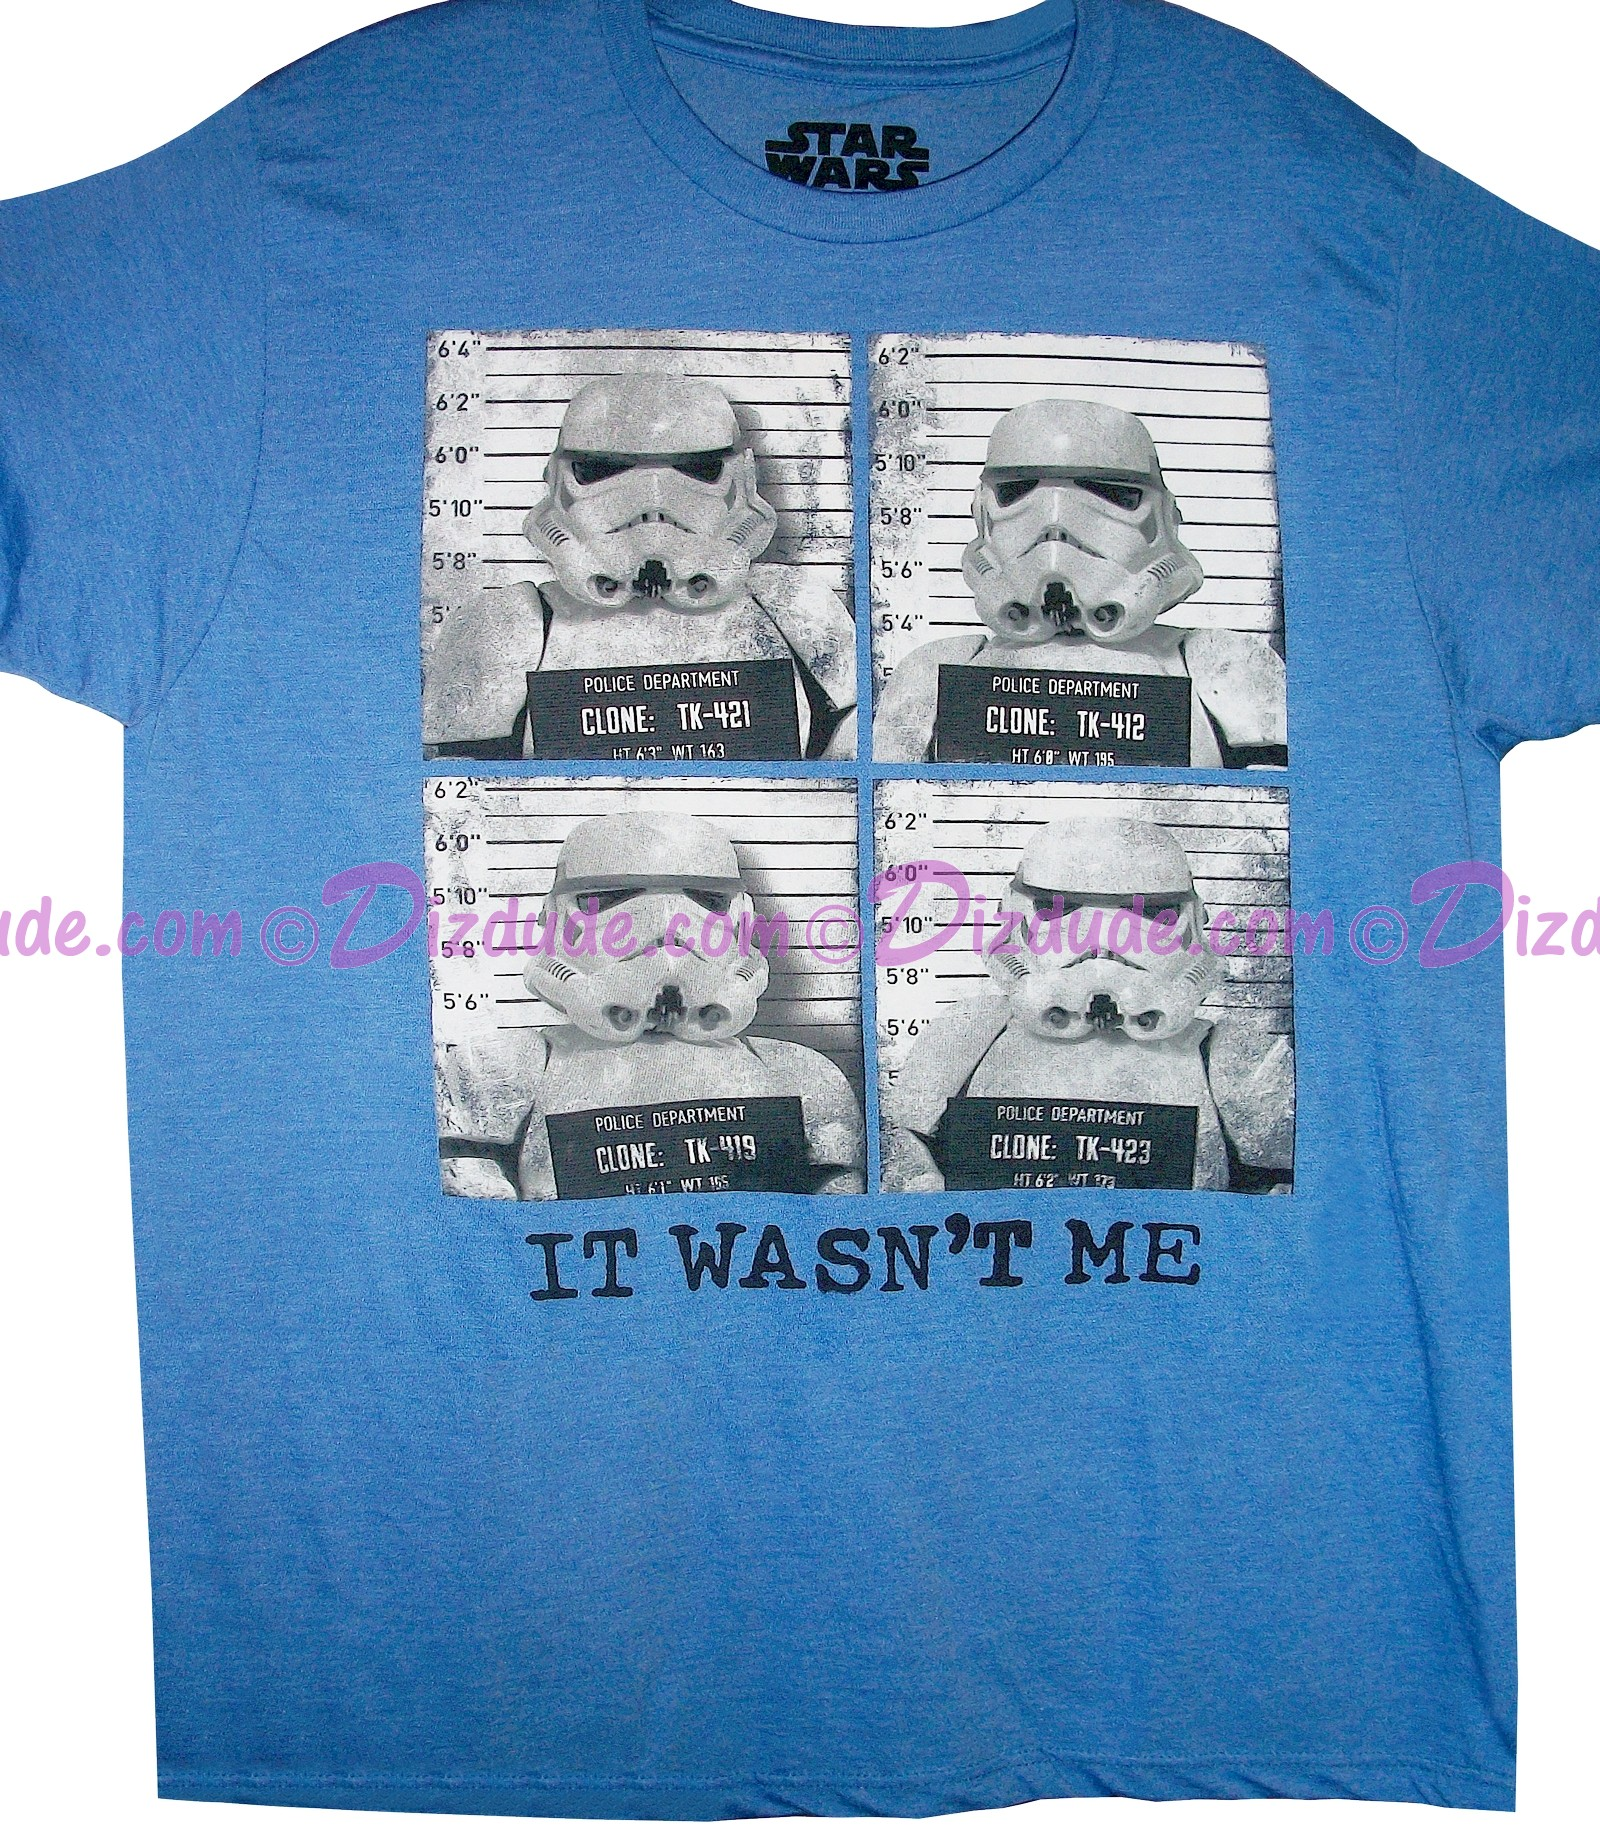 Vintage Star Wars Stormtrooper It Wasn't Me Adult T-Shirt (Tshirt, T shirt or Tee) © Dizdude.com